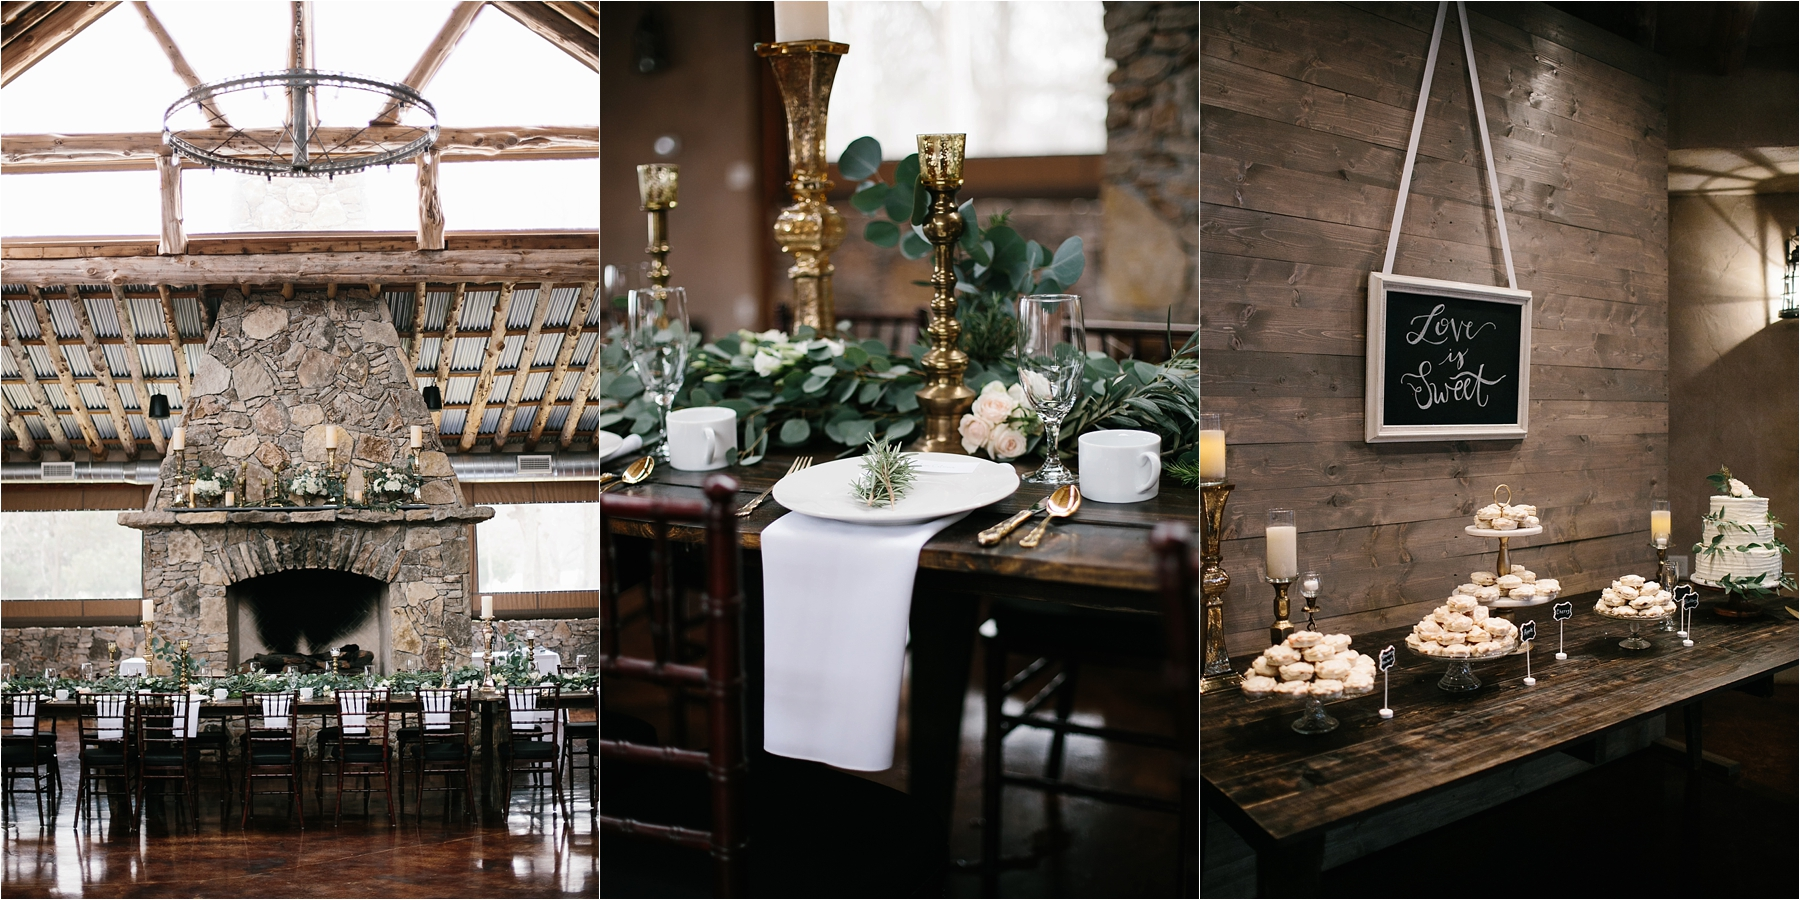 Lauren + Matt __ an intimate, emotional, blush pink, navy blue, and greenery toned wedding accents at the Brooks at Weatherford by North Texas Wedding Photographer Rachel Meagan Photography103